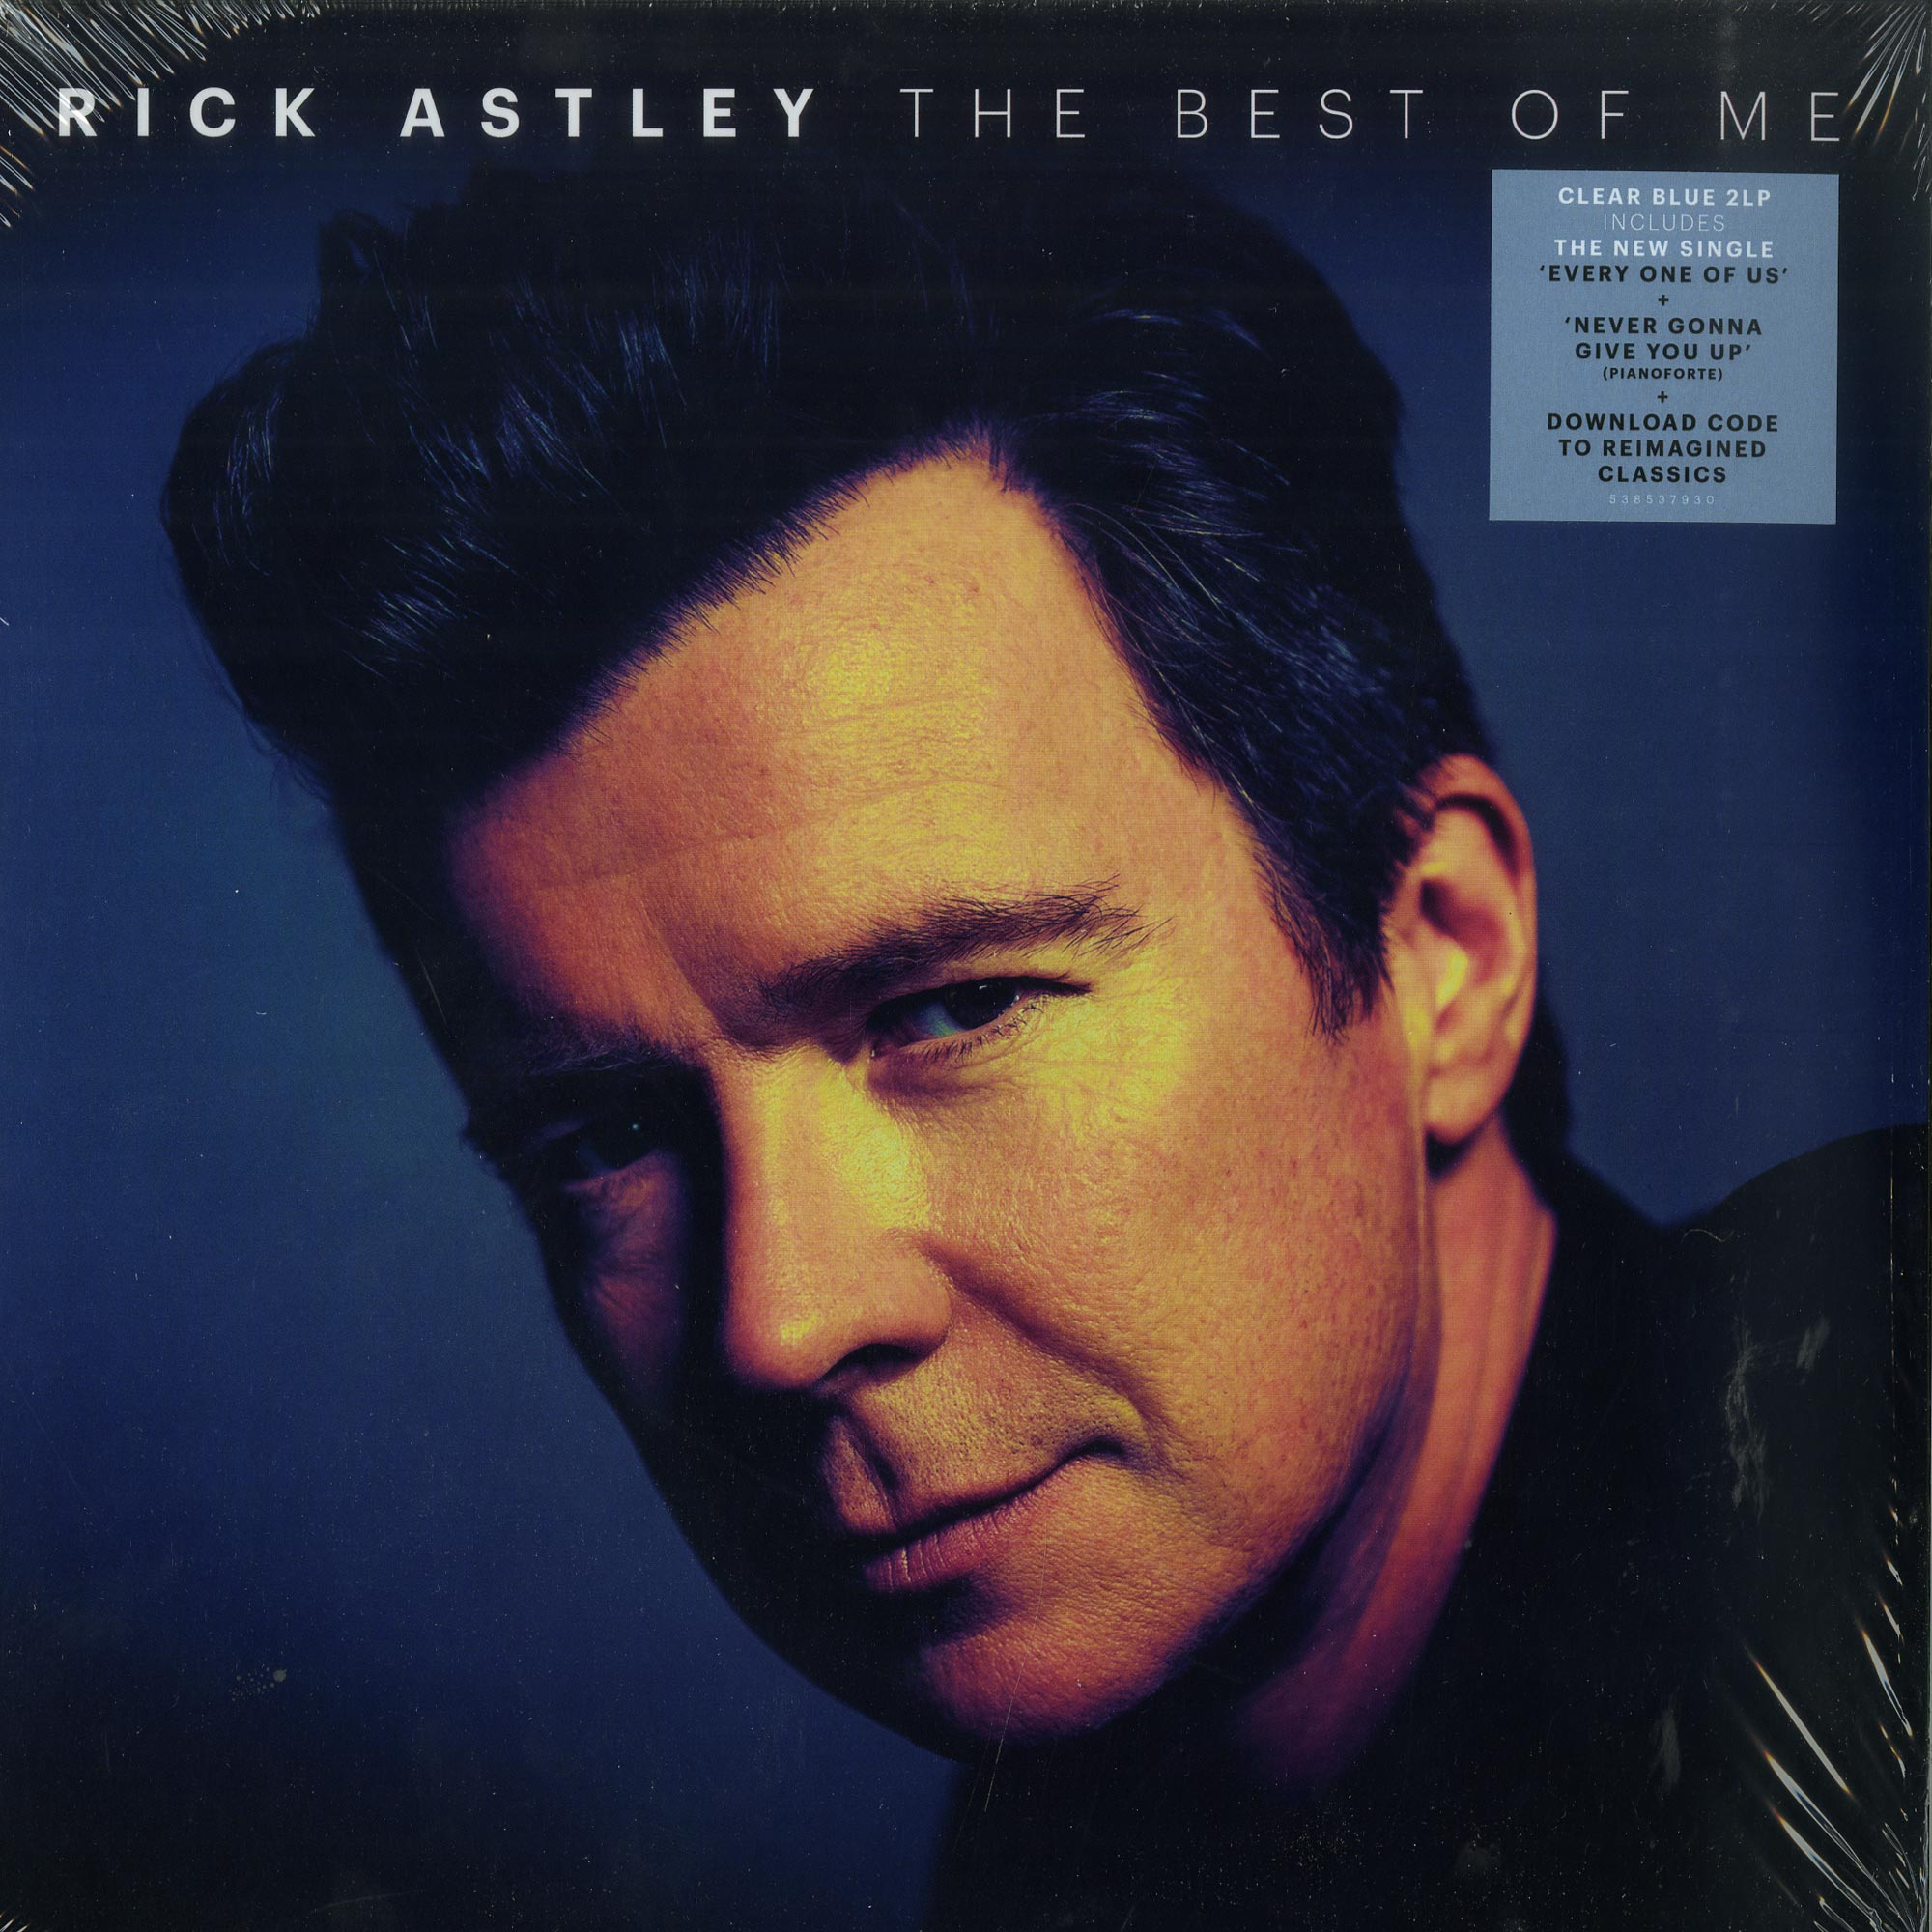 Rick Astley - THE BEST OF ME